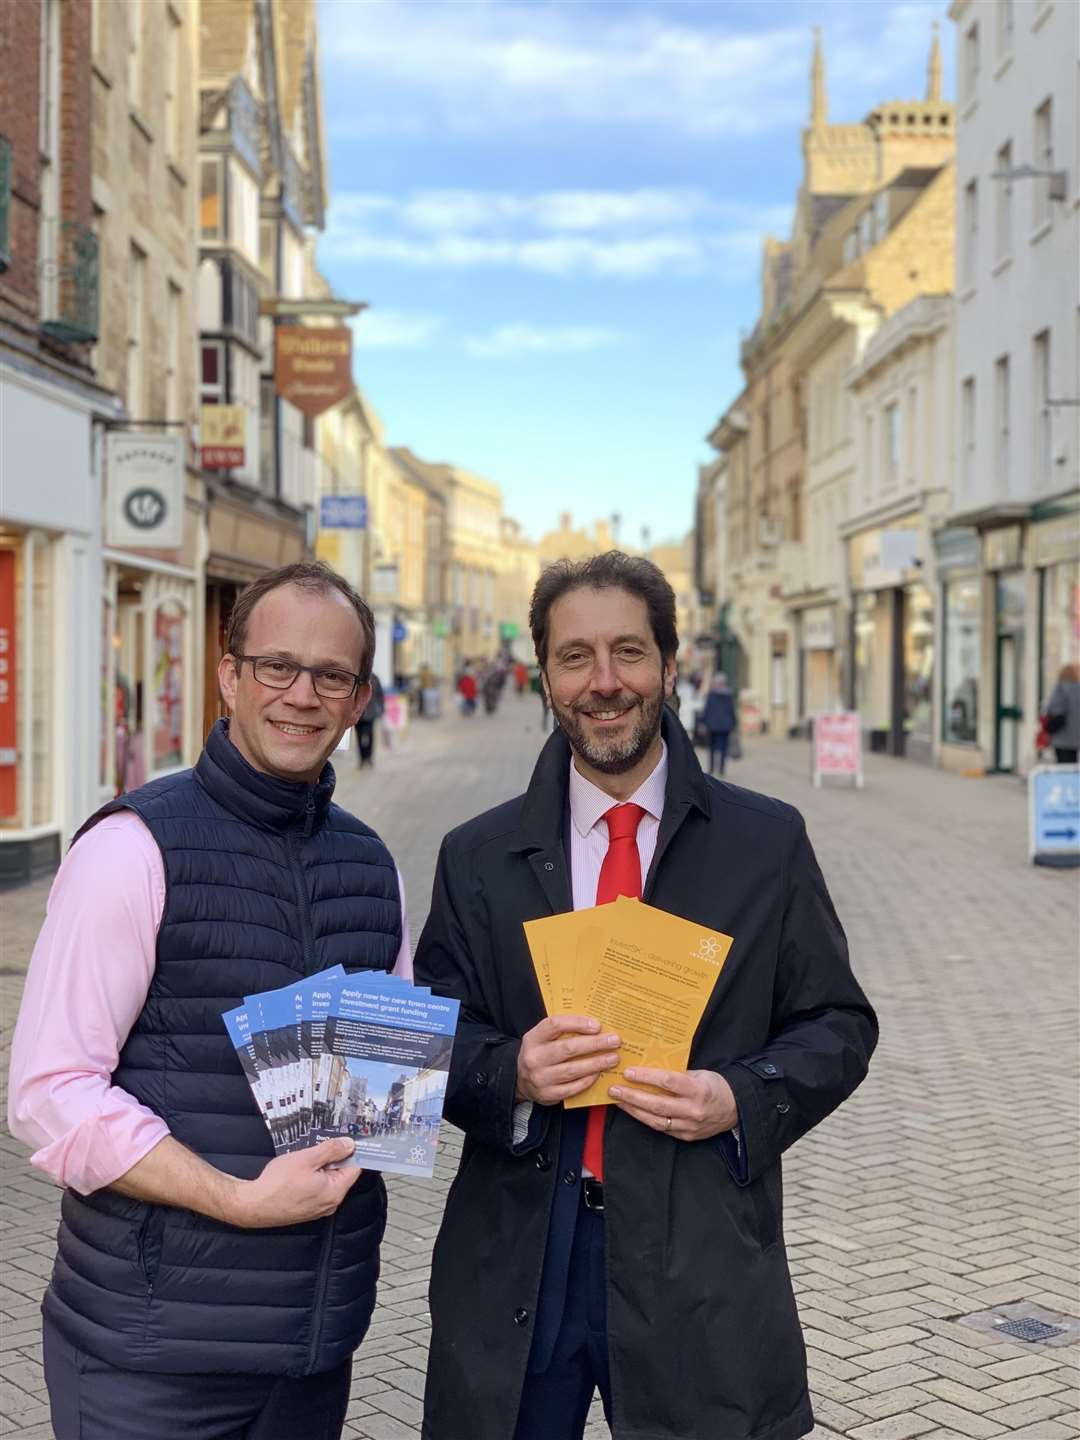 Coun Matthew Lee and Steve Bowyer, chief executive of InvestSK, in Stamford High Street